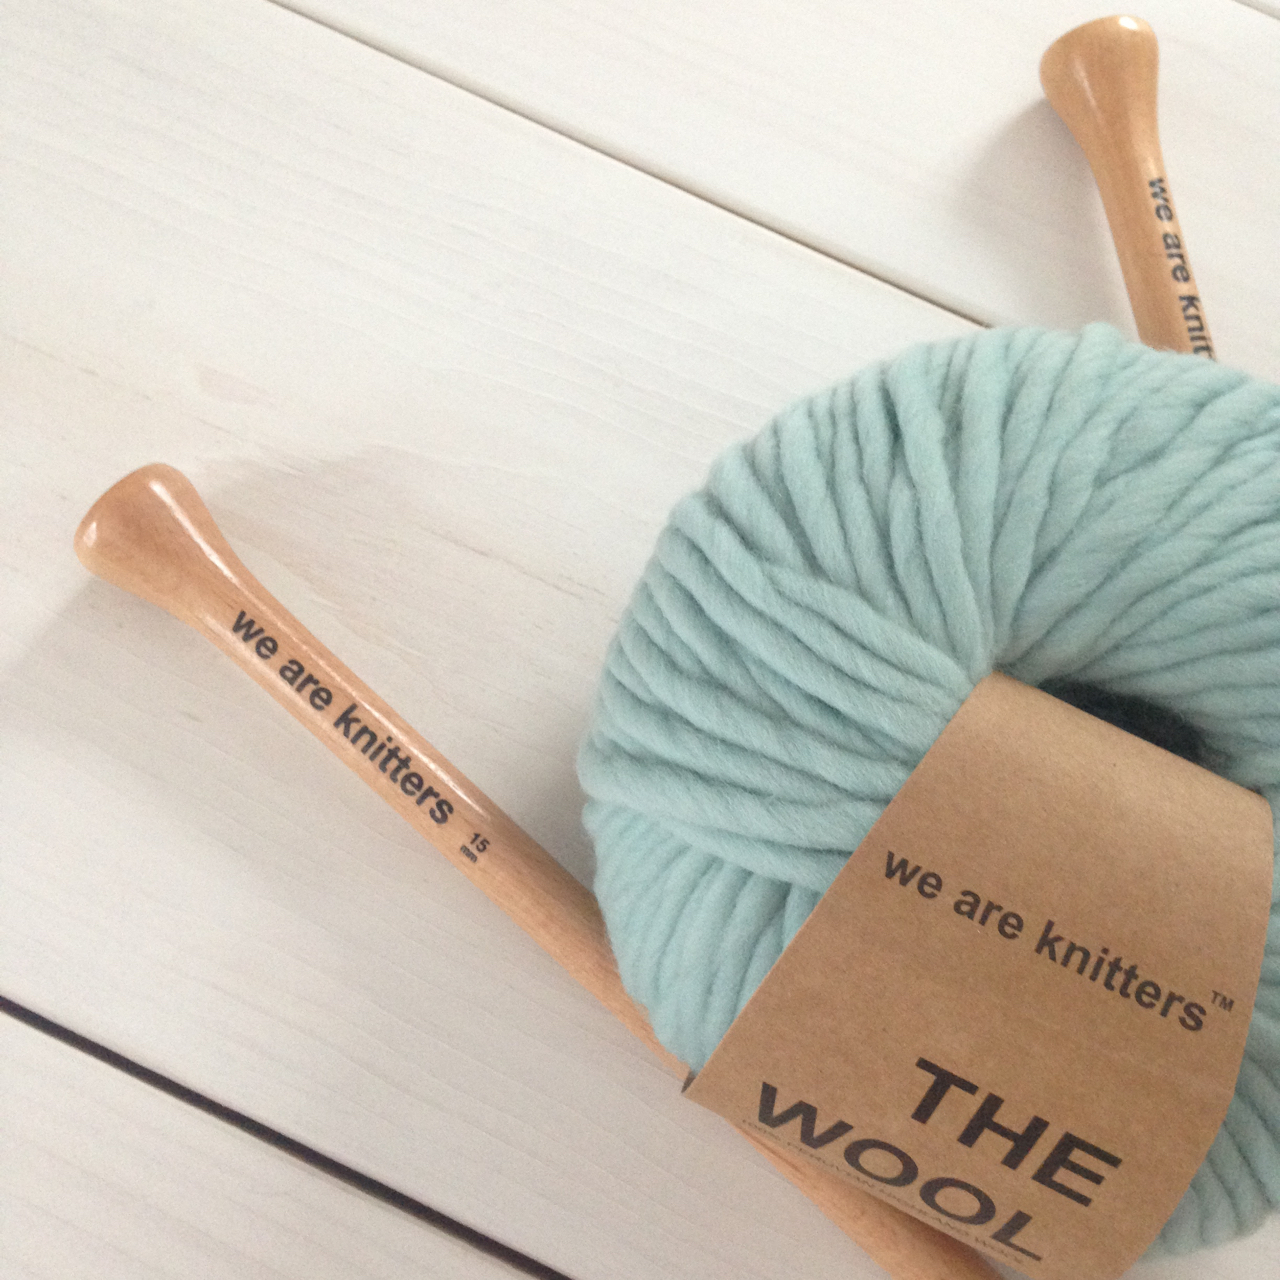 We Are Knitters We Are Knitters Review Giveaway Blog Birch Landing Home